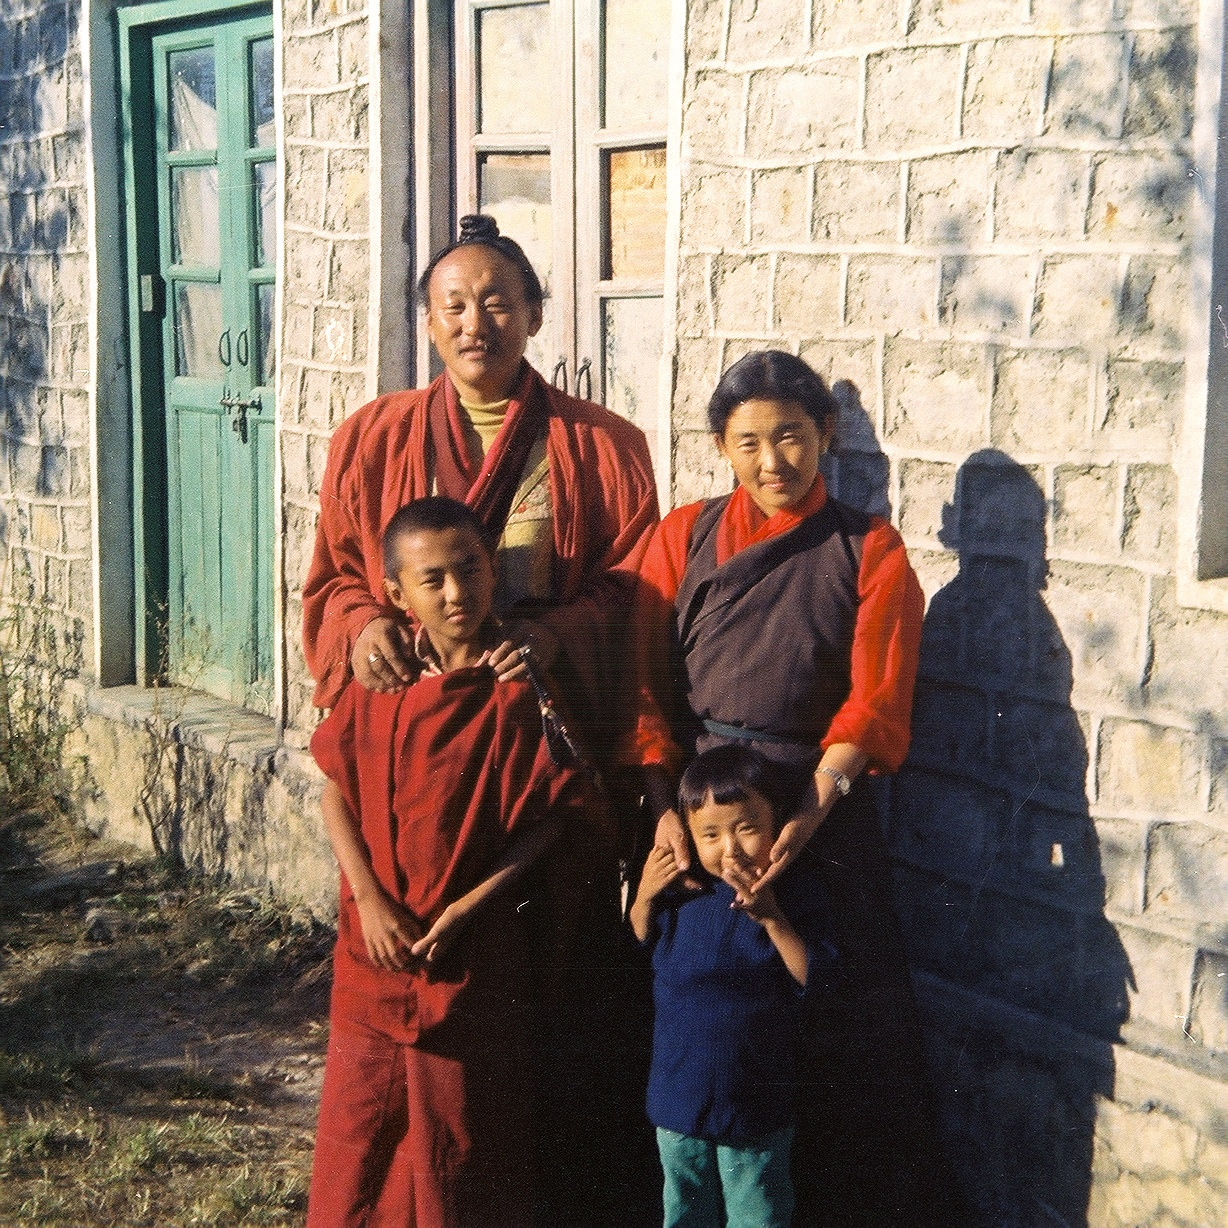 Chagdud Tulku Rinpoche and Family